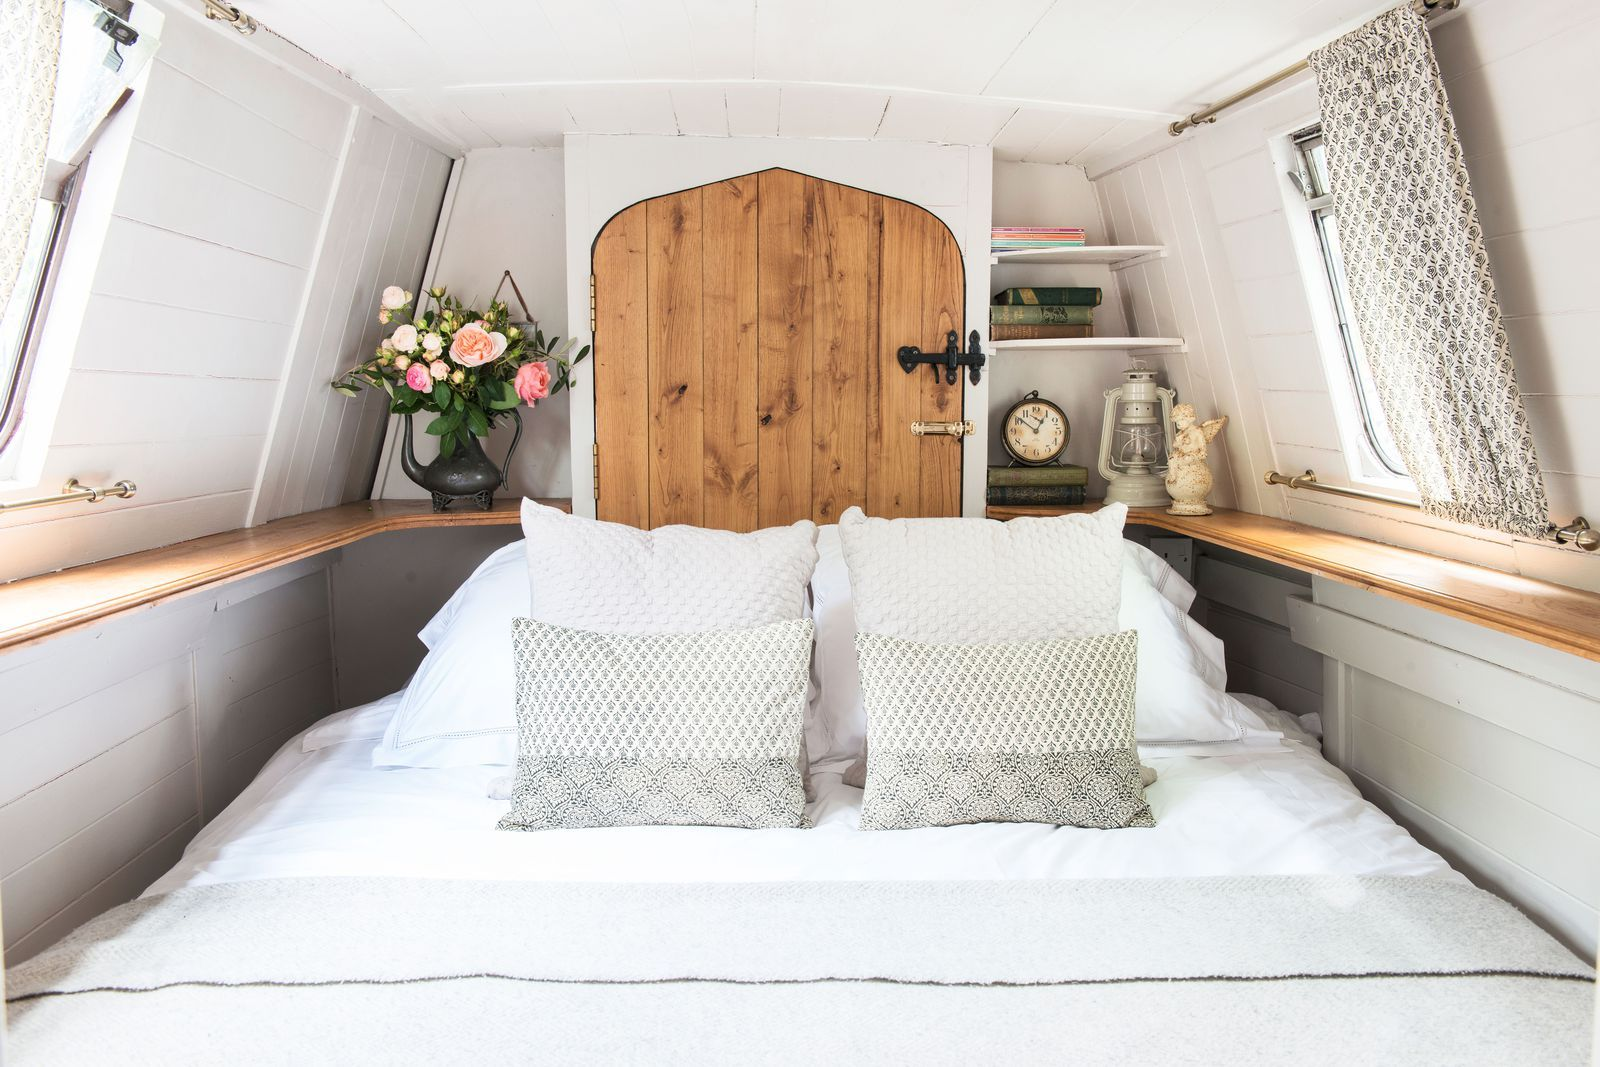 This Picturesque Century Old Narrowboat Makes Stylish Use Of Every